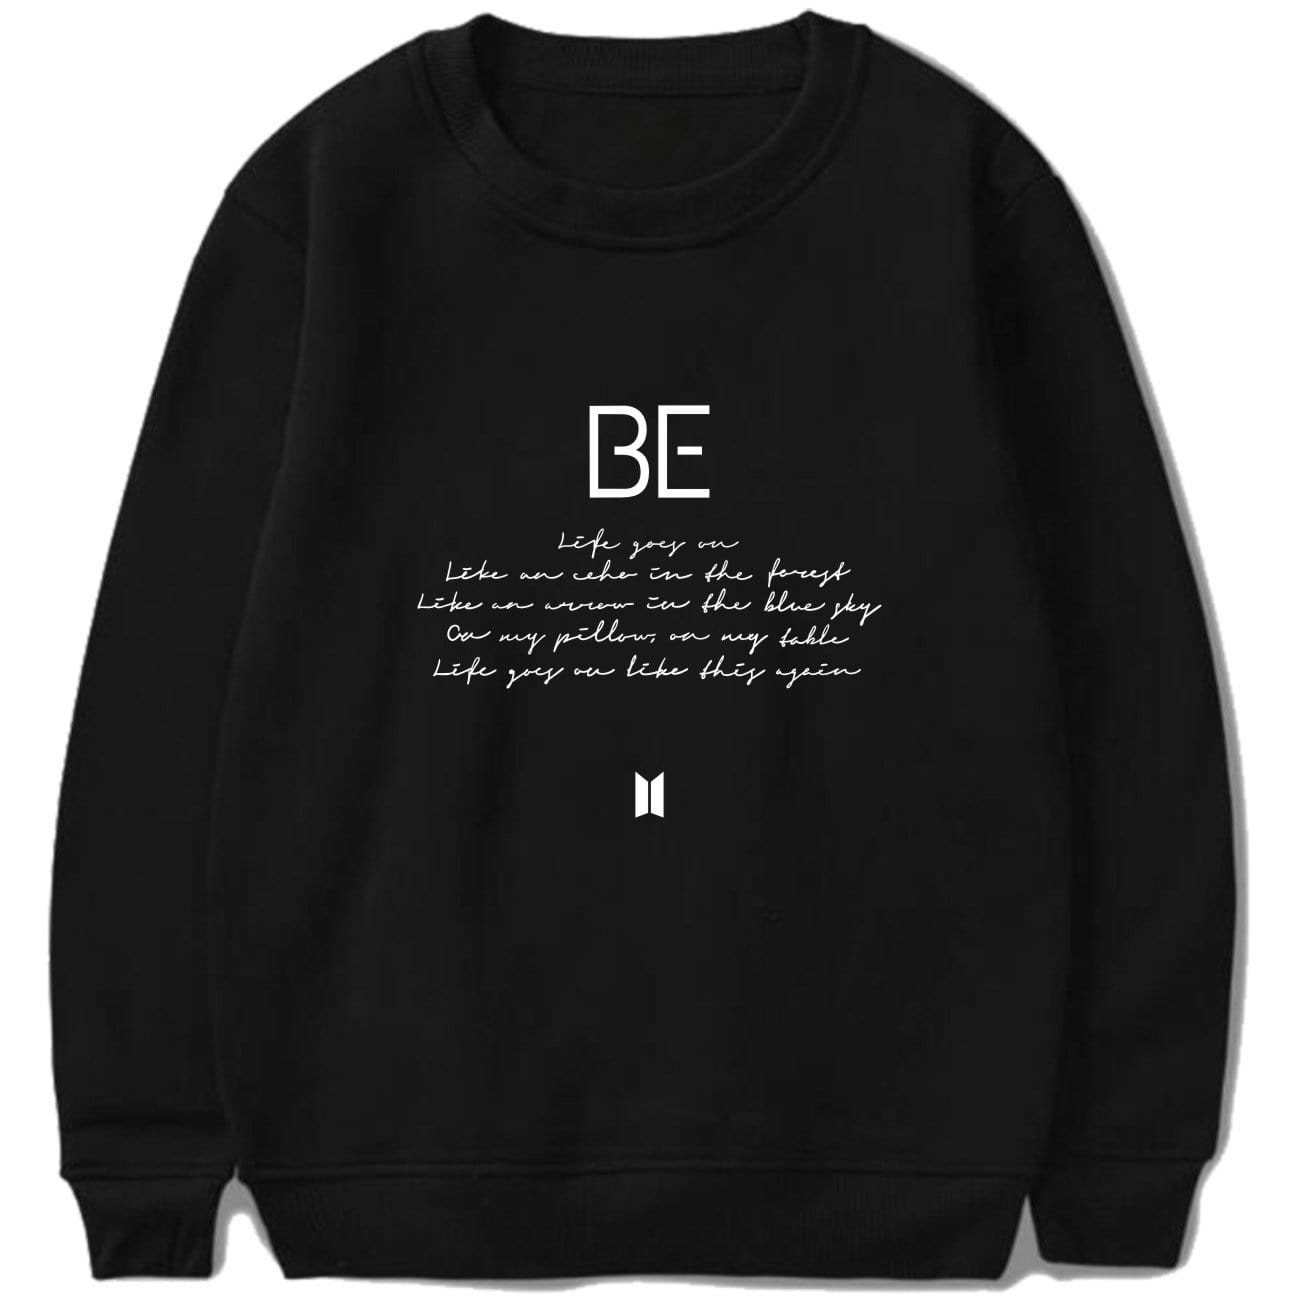 Bangtan7 BE Sweatshirt